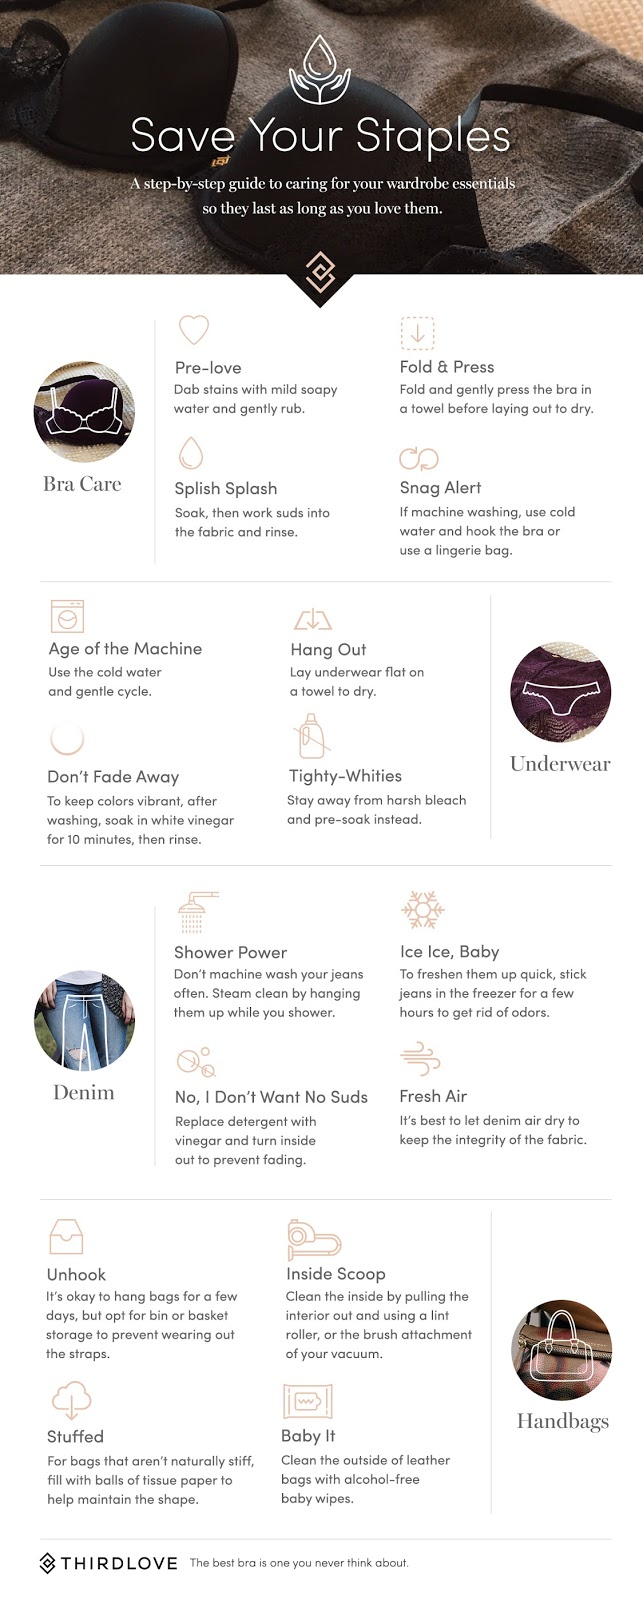 A step-by-step guide to caring for your wardrobe essentials so they last as long as you love them